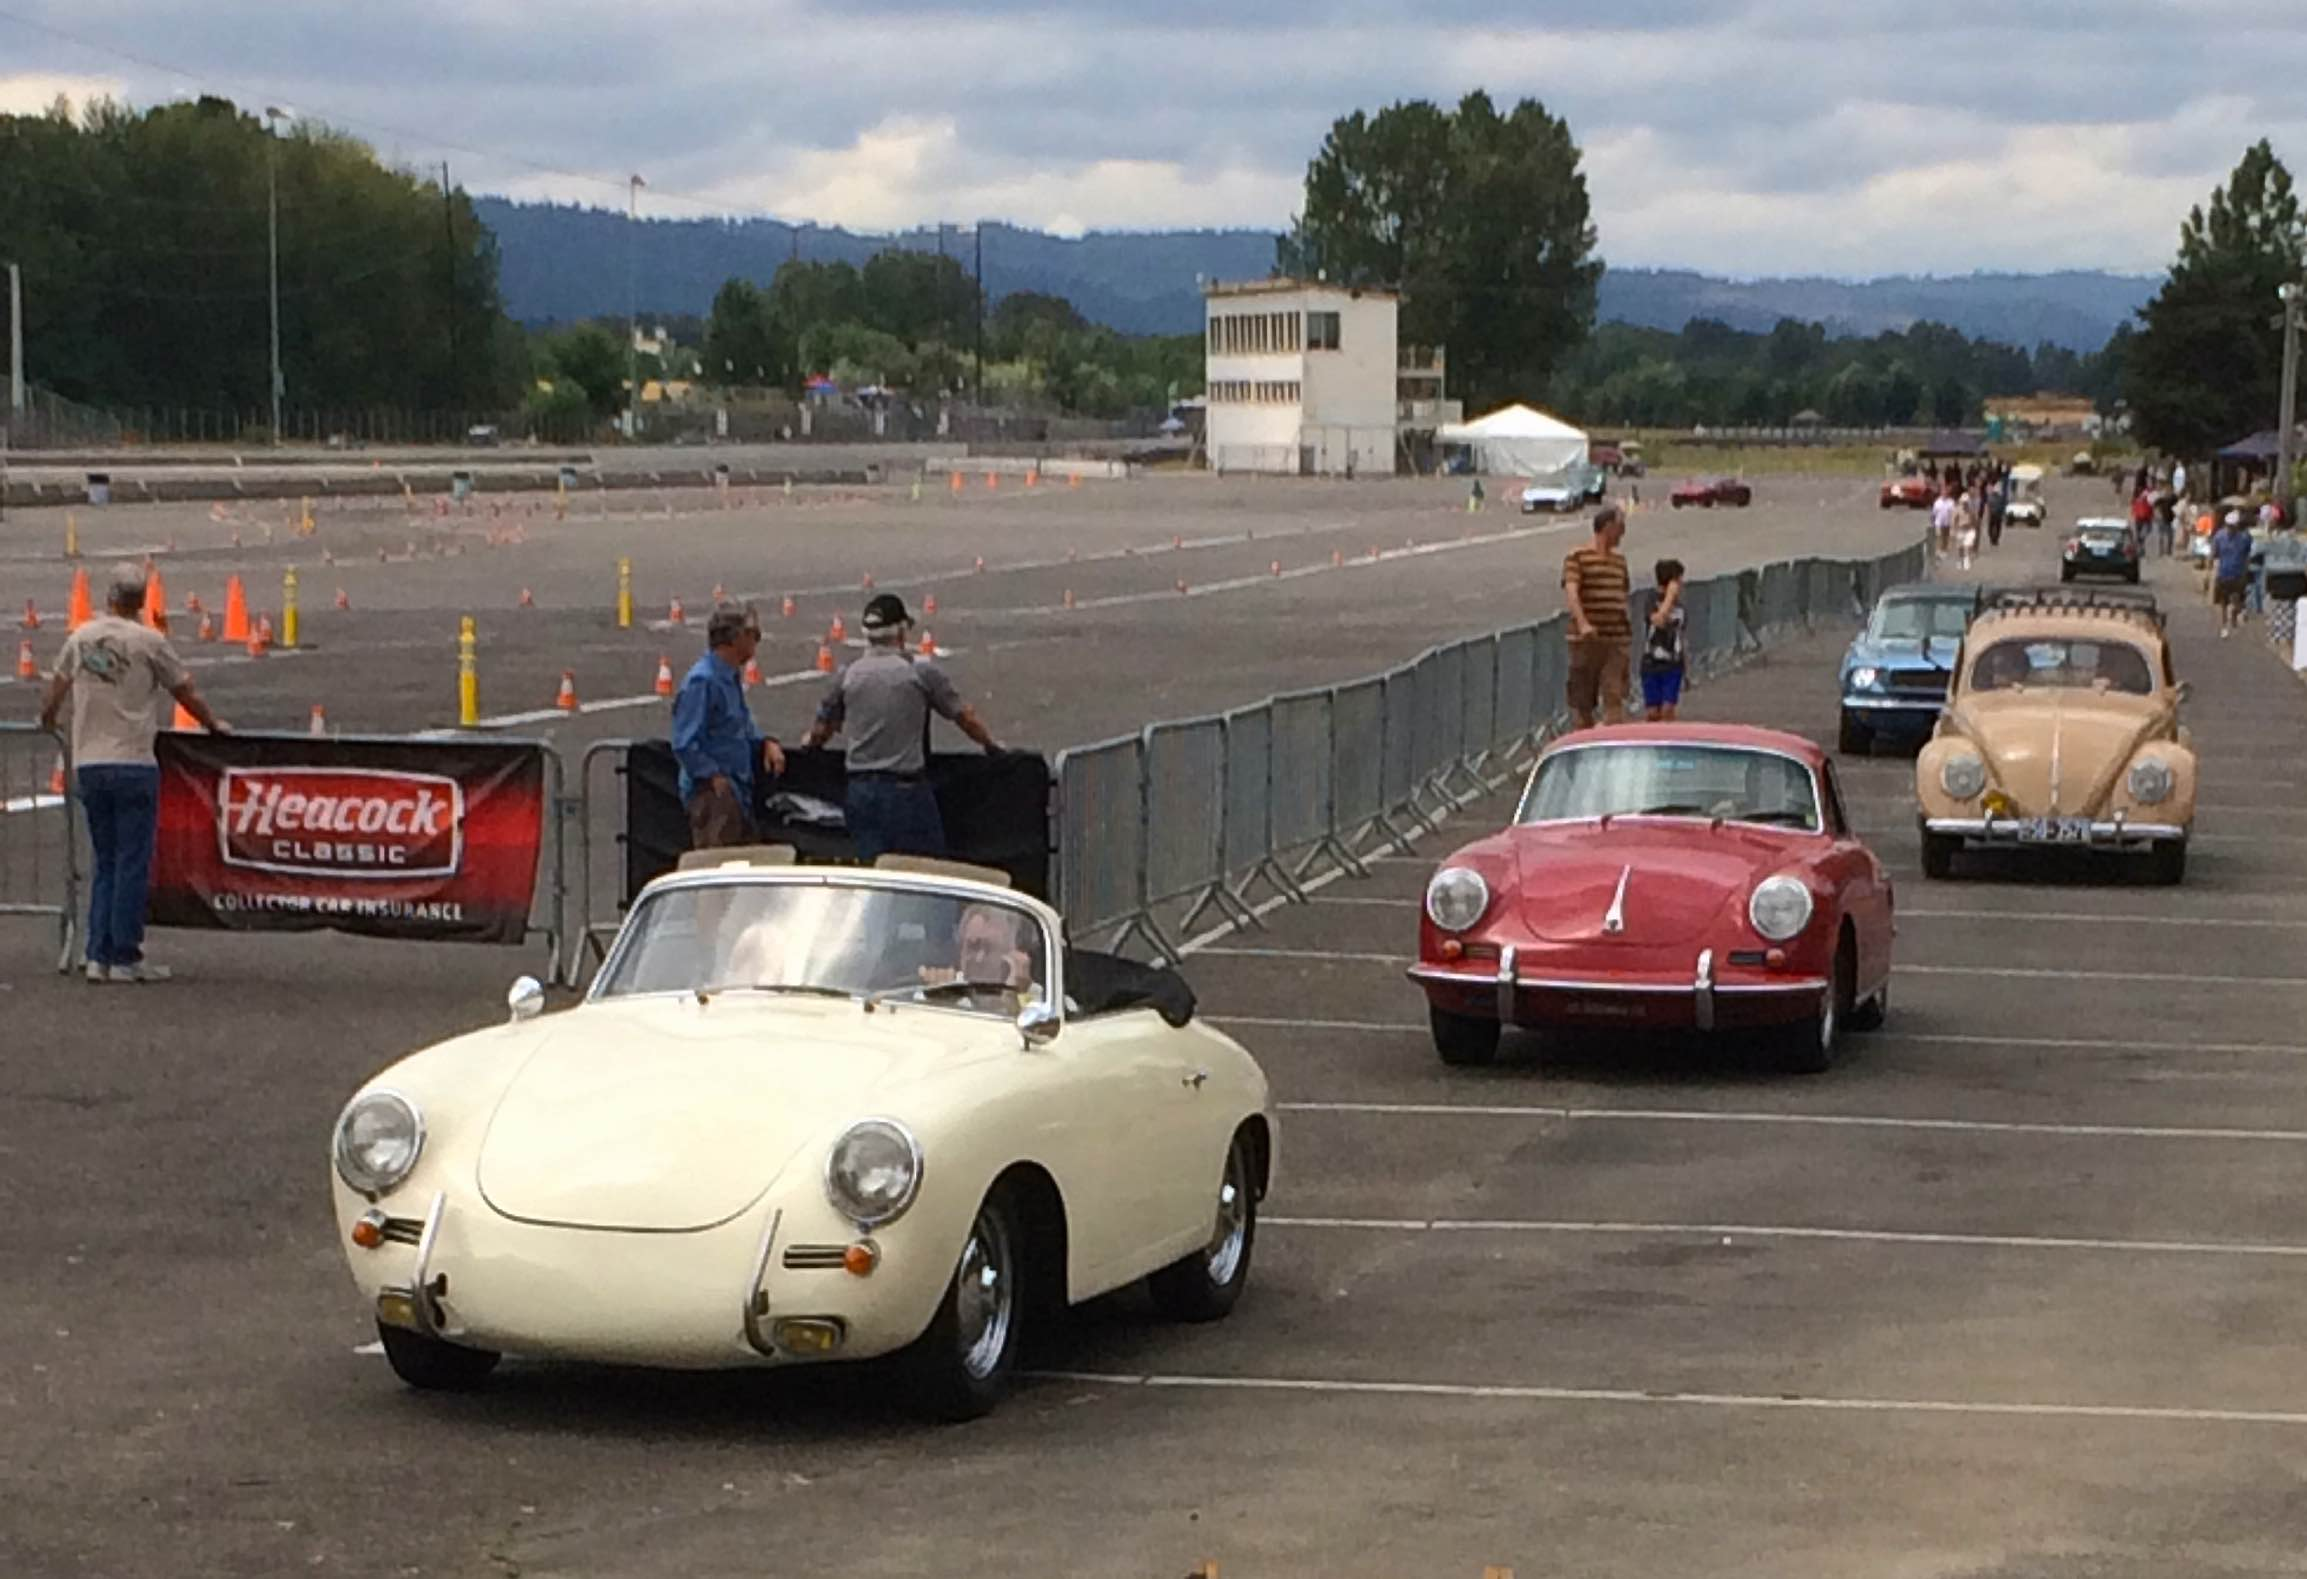 Classic Porsches and VW driving through a car show or tour parking lot